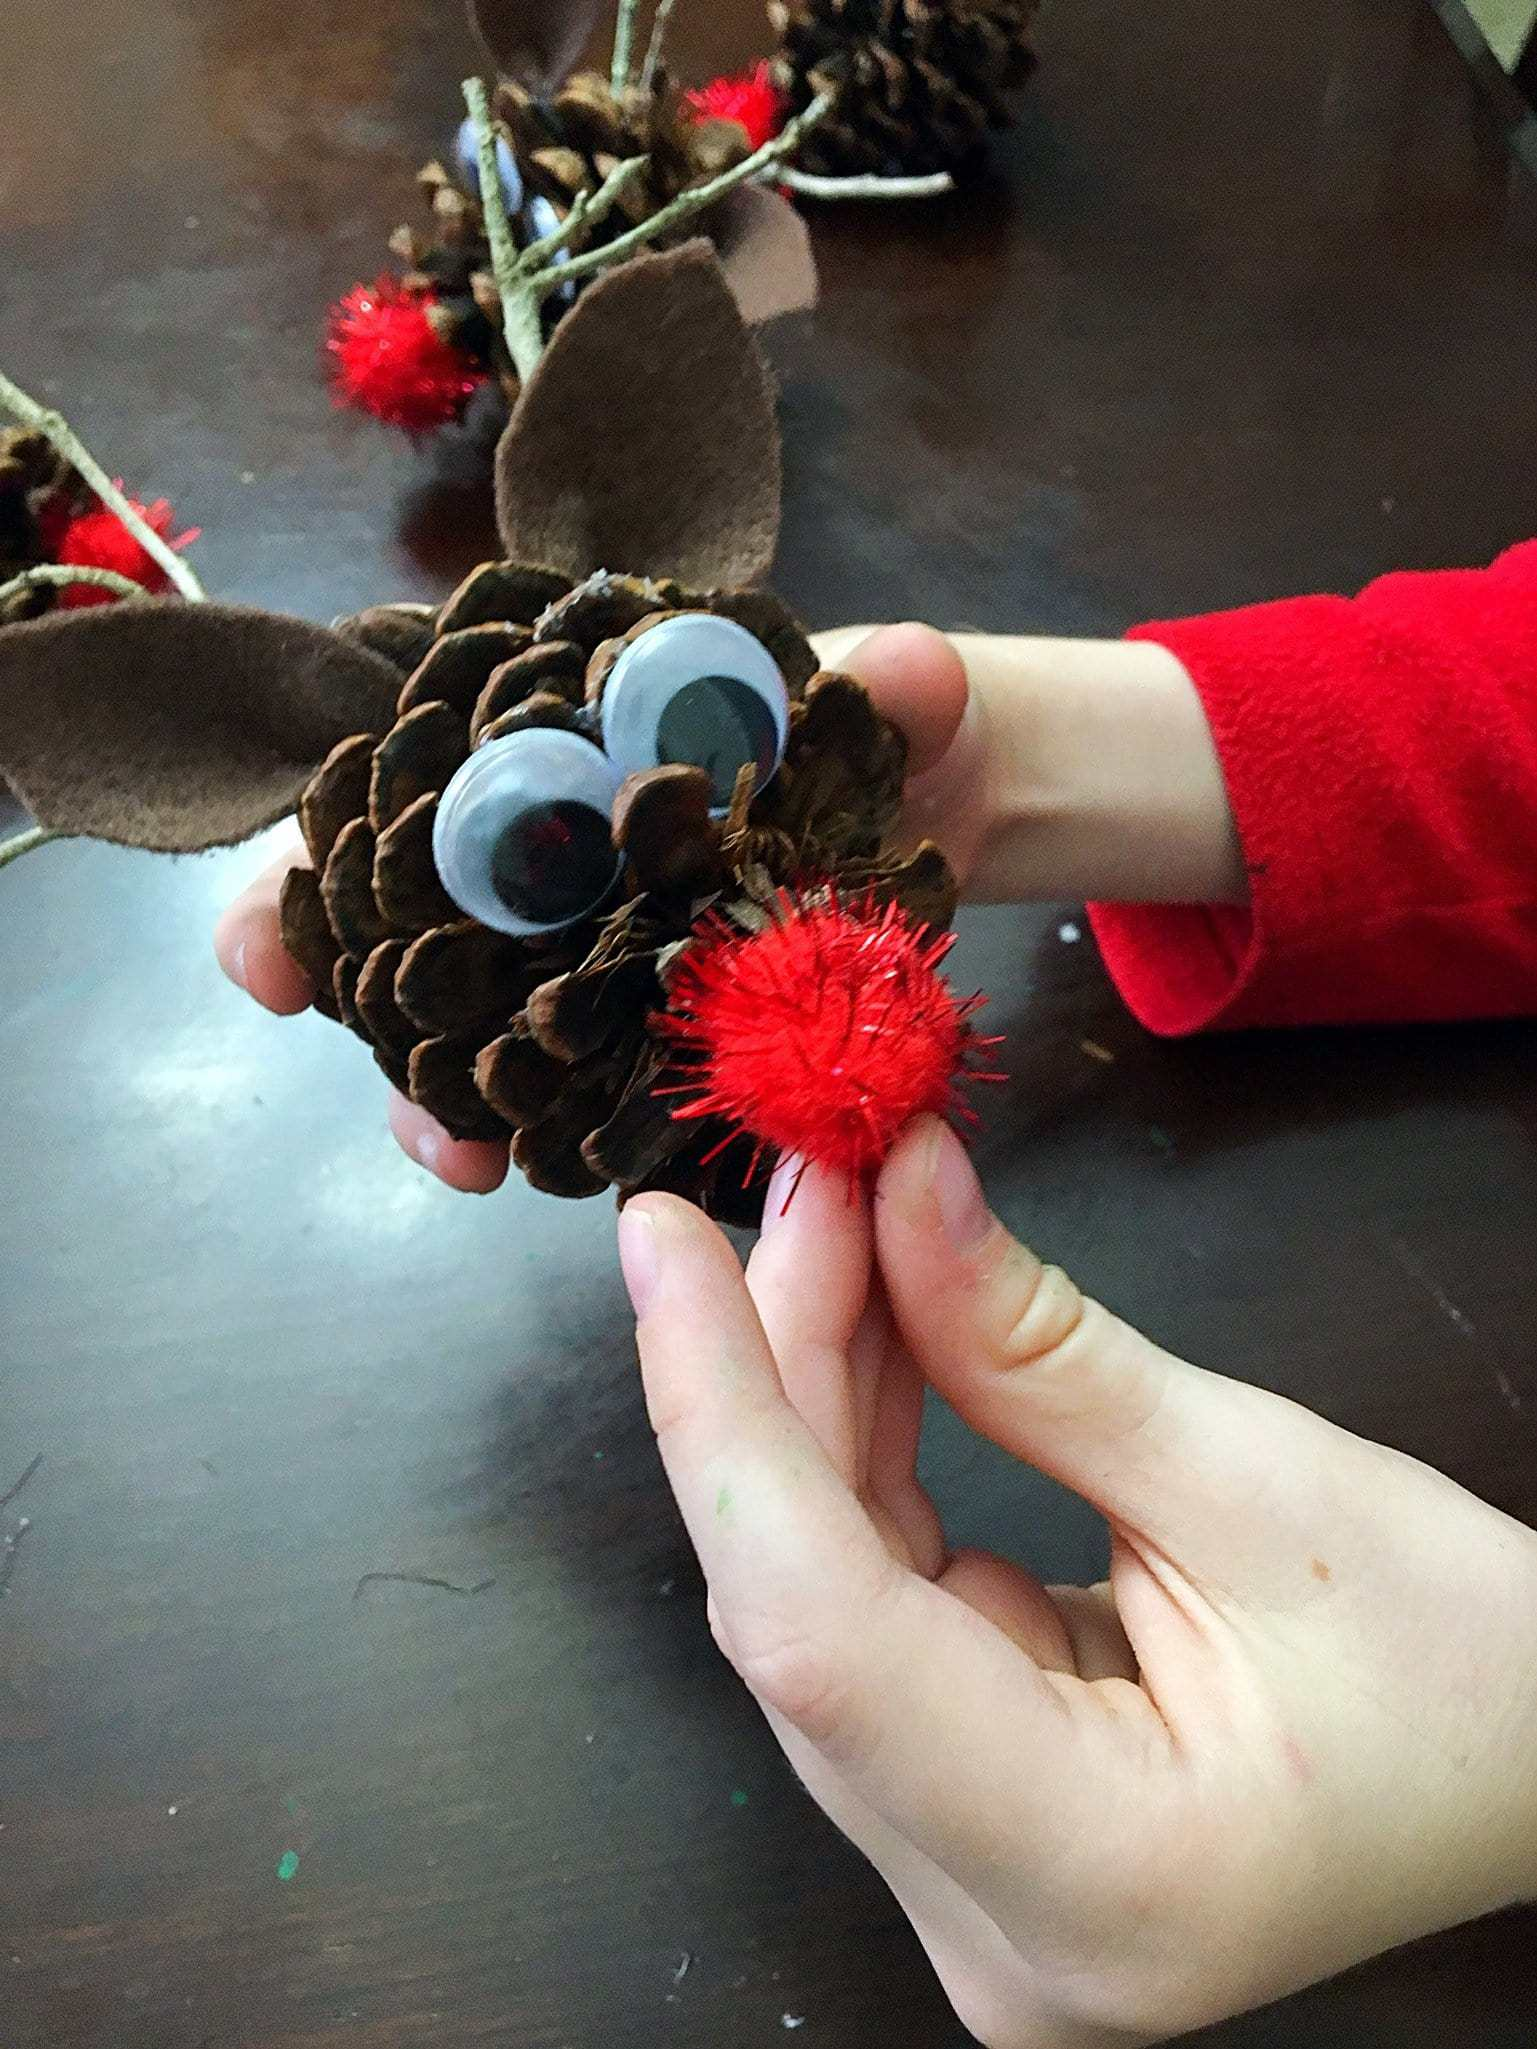 Check out these 3 Easy DIY Pinecone Christmas Ornaments for Kids, including pinecone Christmas trees, owl pinecones, and reindeer pinecone ornaments. #christmasornaments #pineconeornaments #diy #kidscrafts